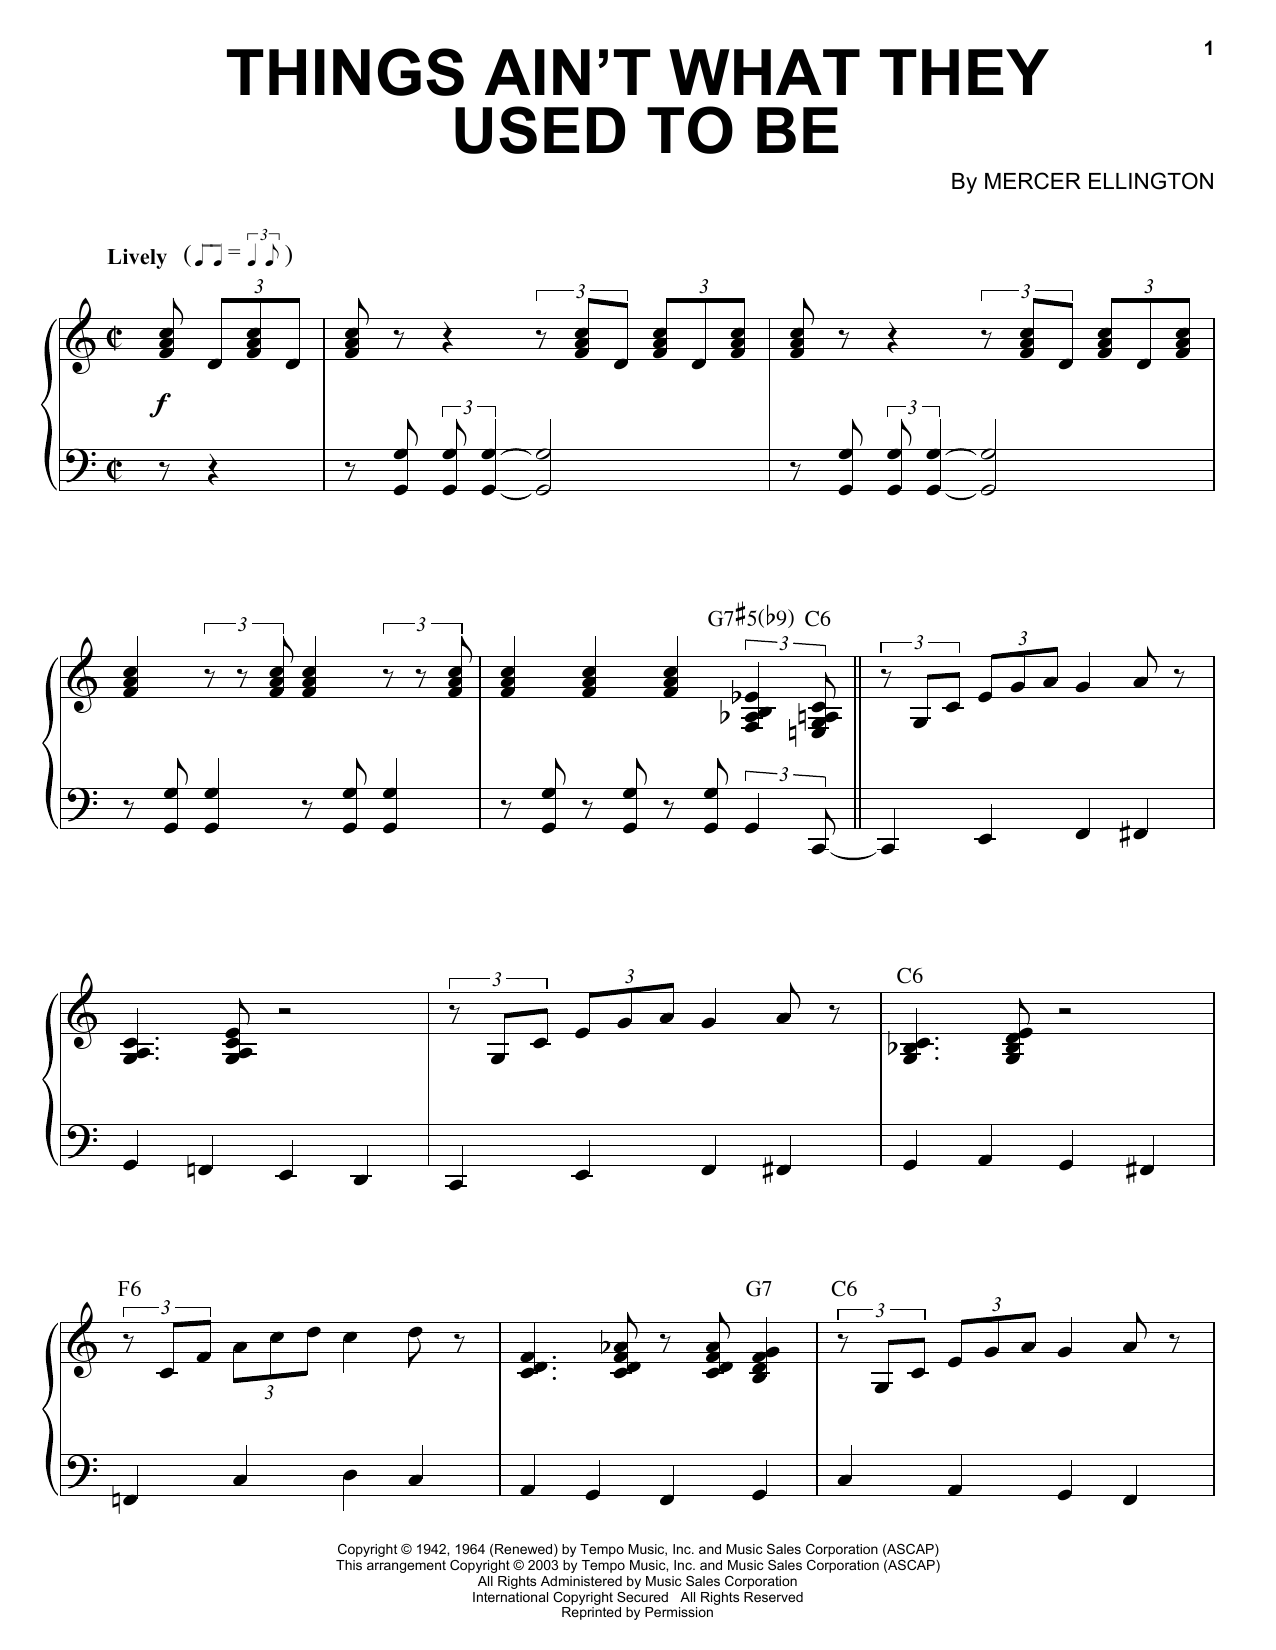 Duke Ellington Things Ain't What They Used To Be sheet music notes and chords. Download Printable PDF.